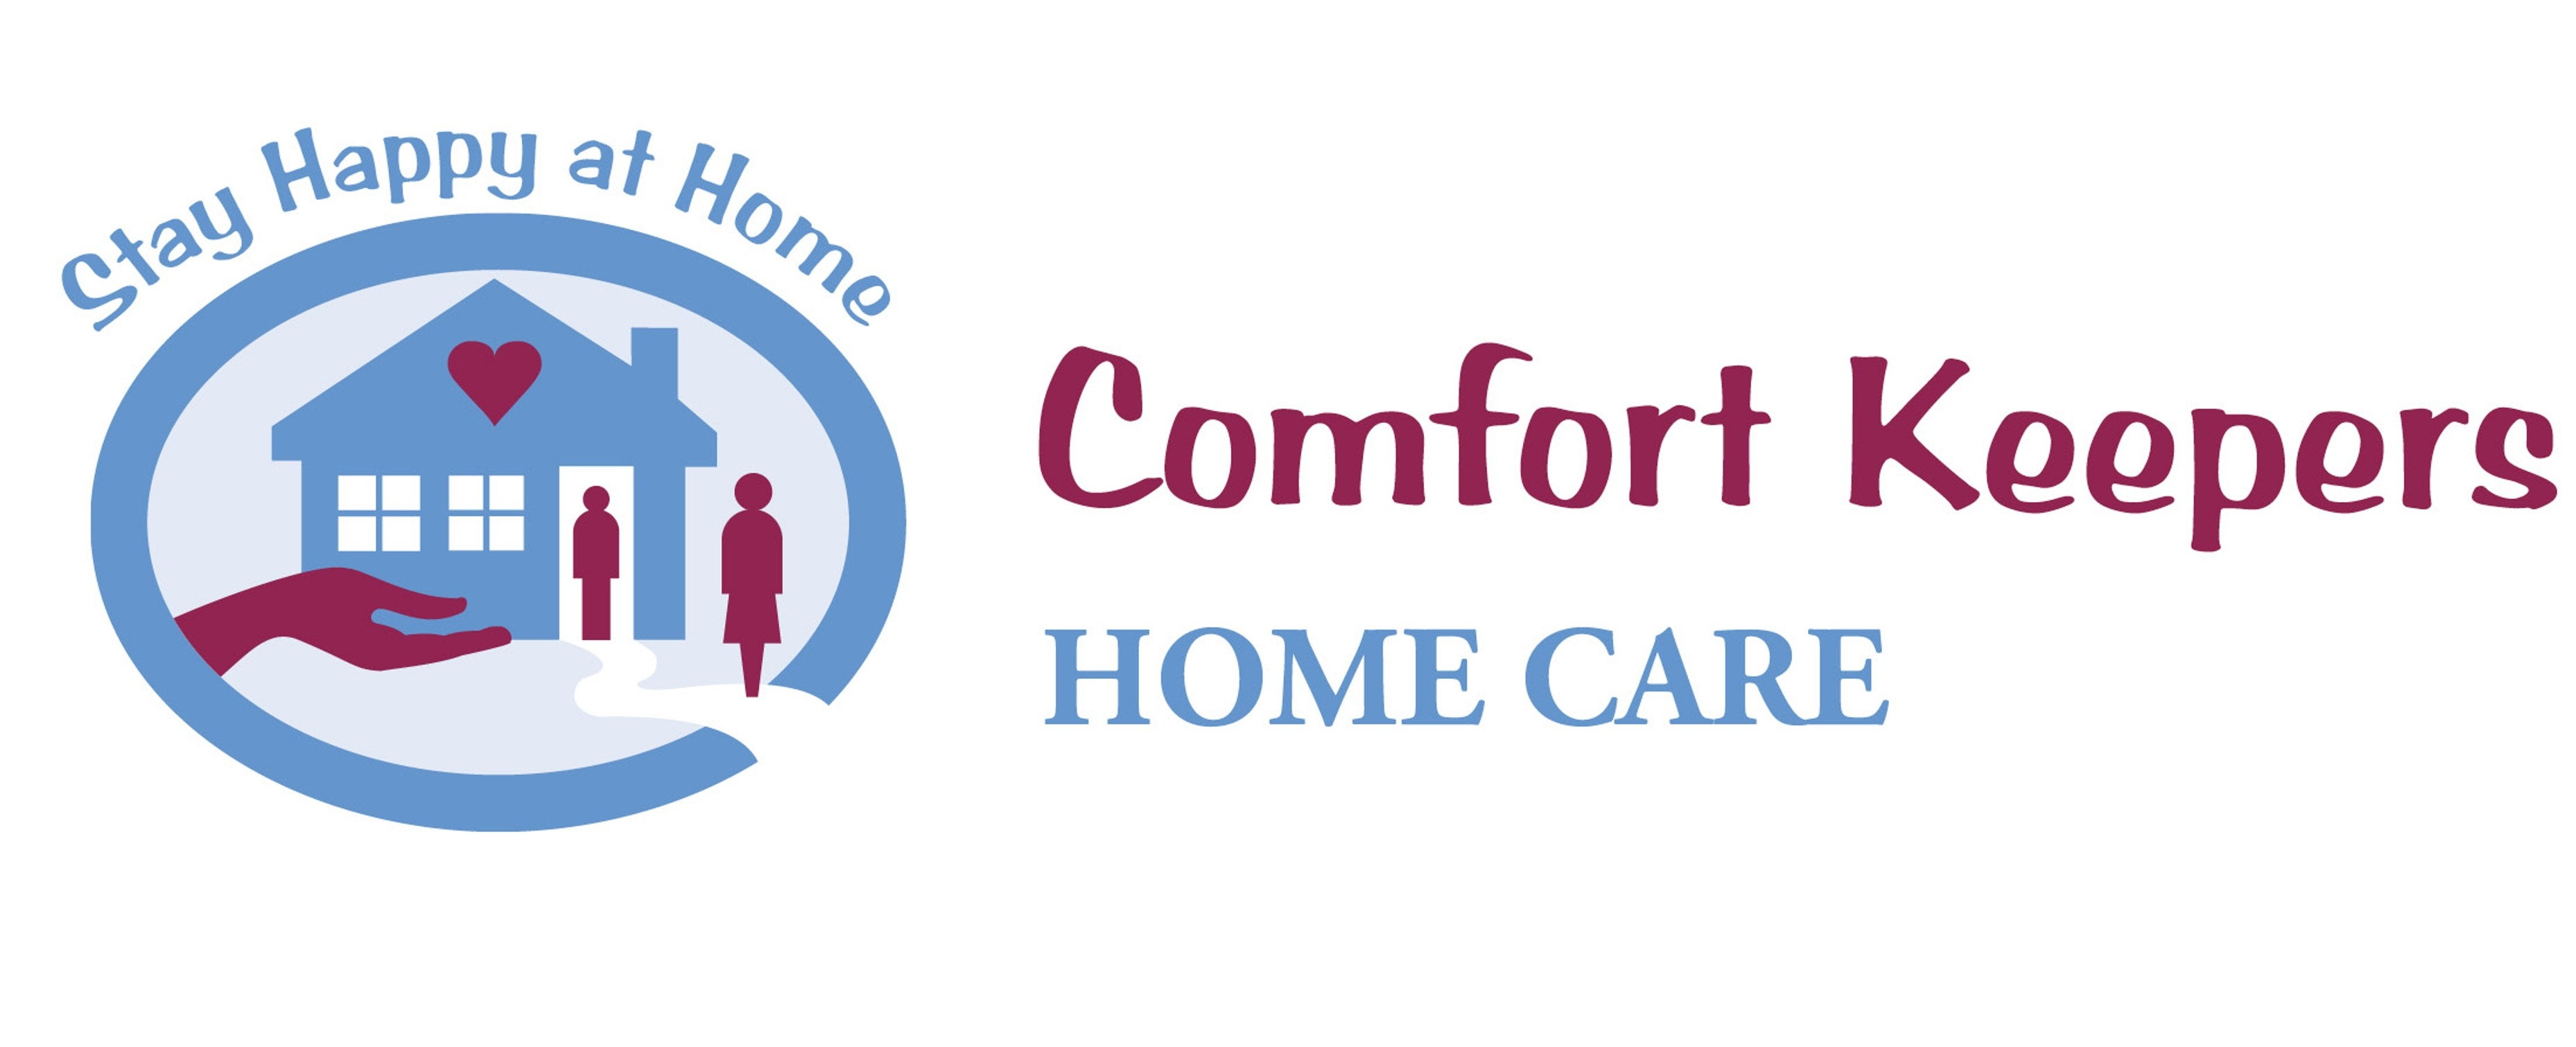 Comfort Keepers uses Talent Recruiter